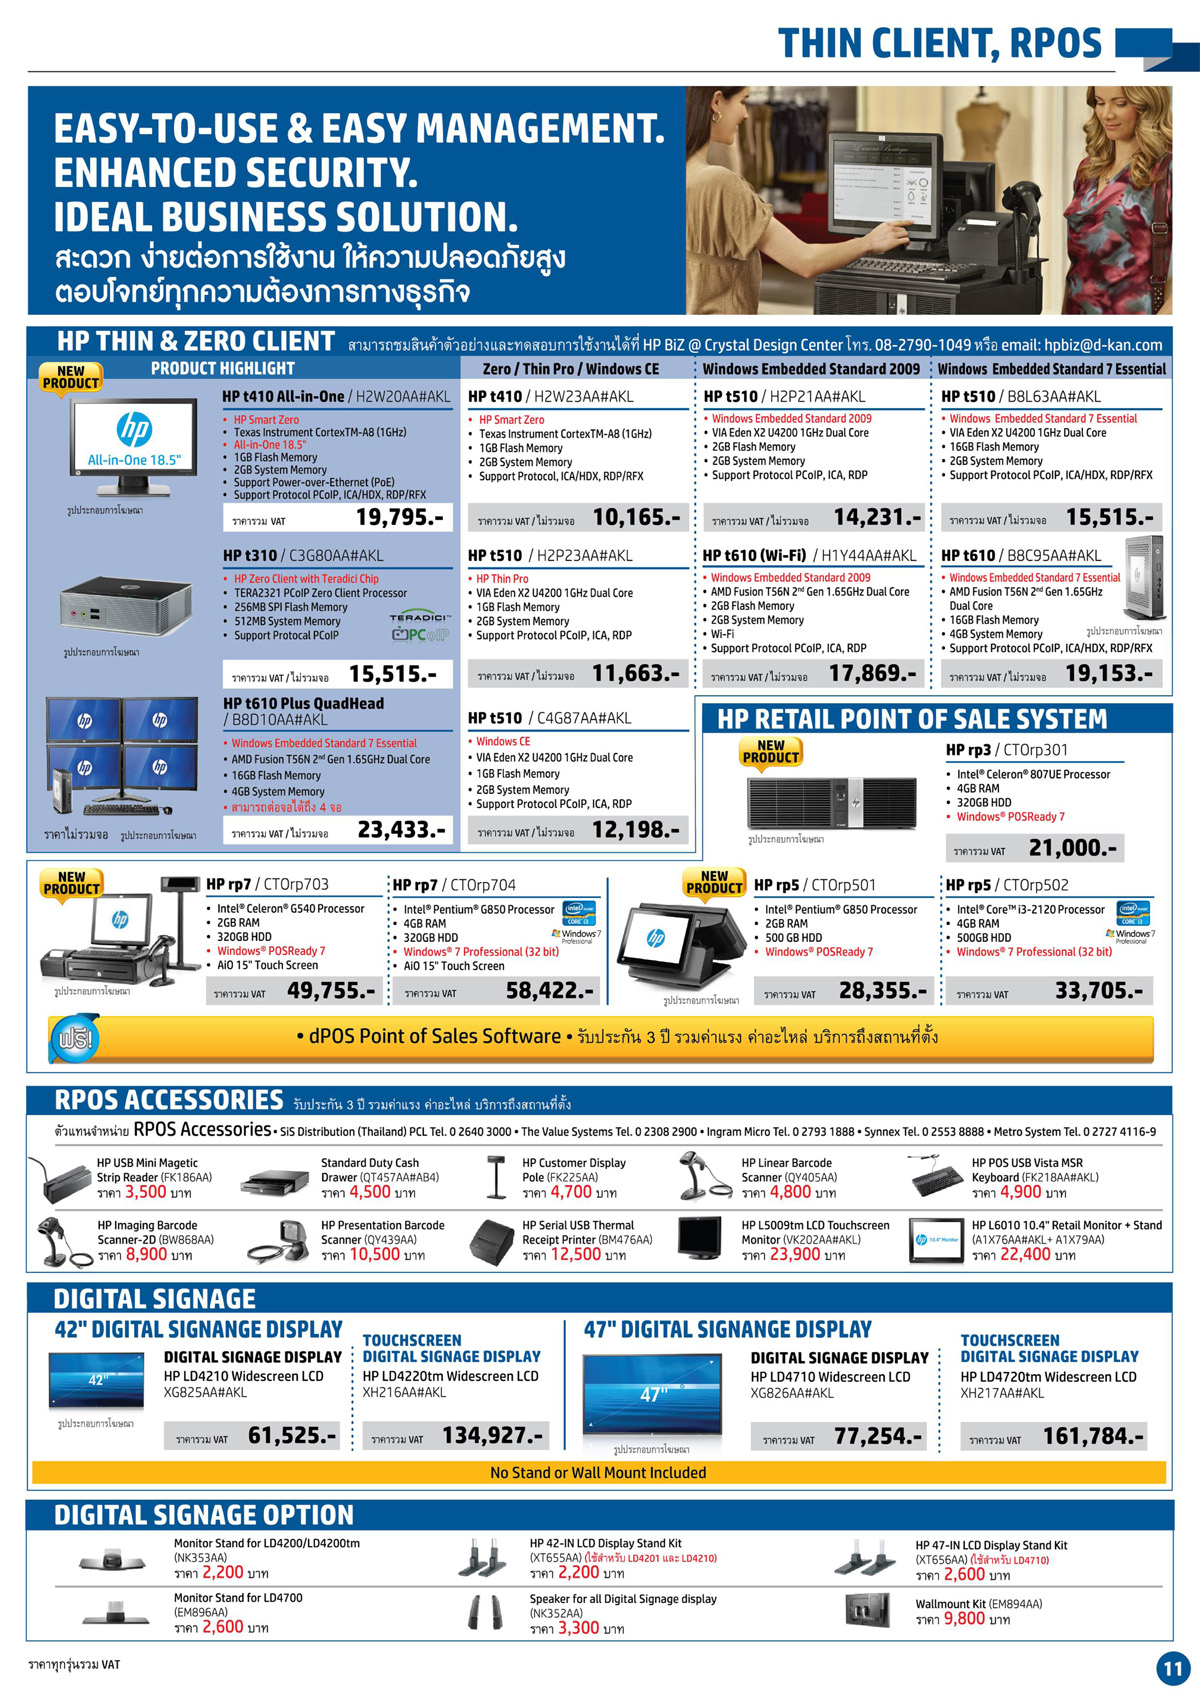 HP Business 02 2013 11